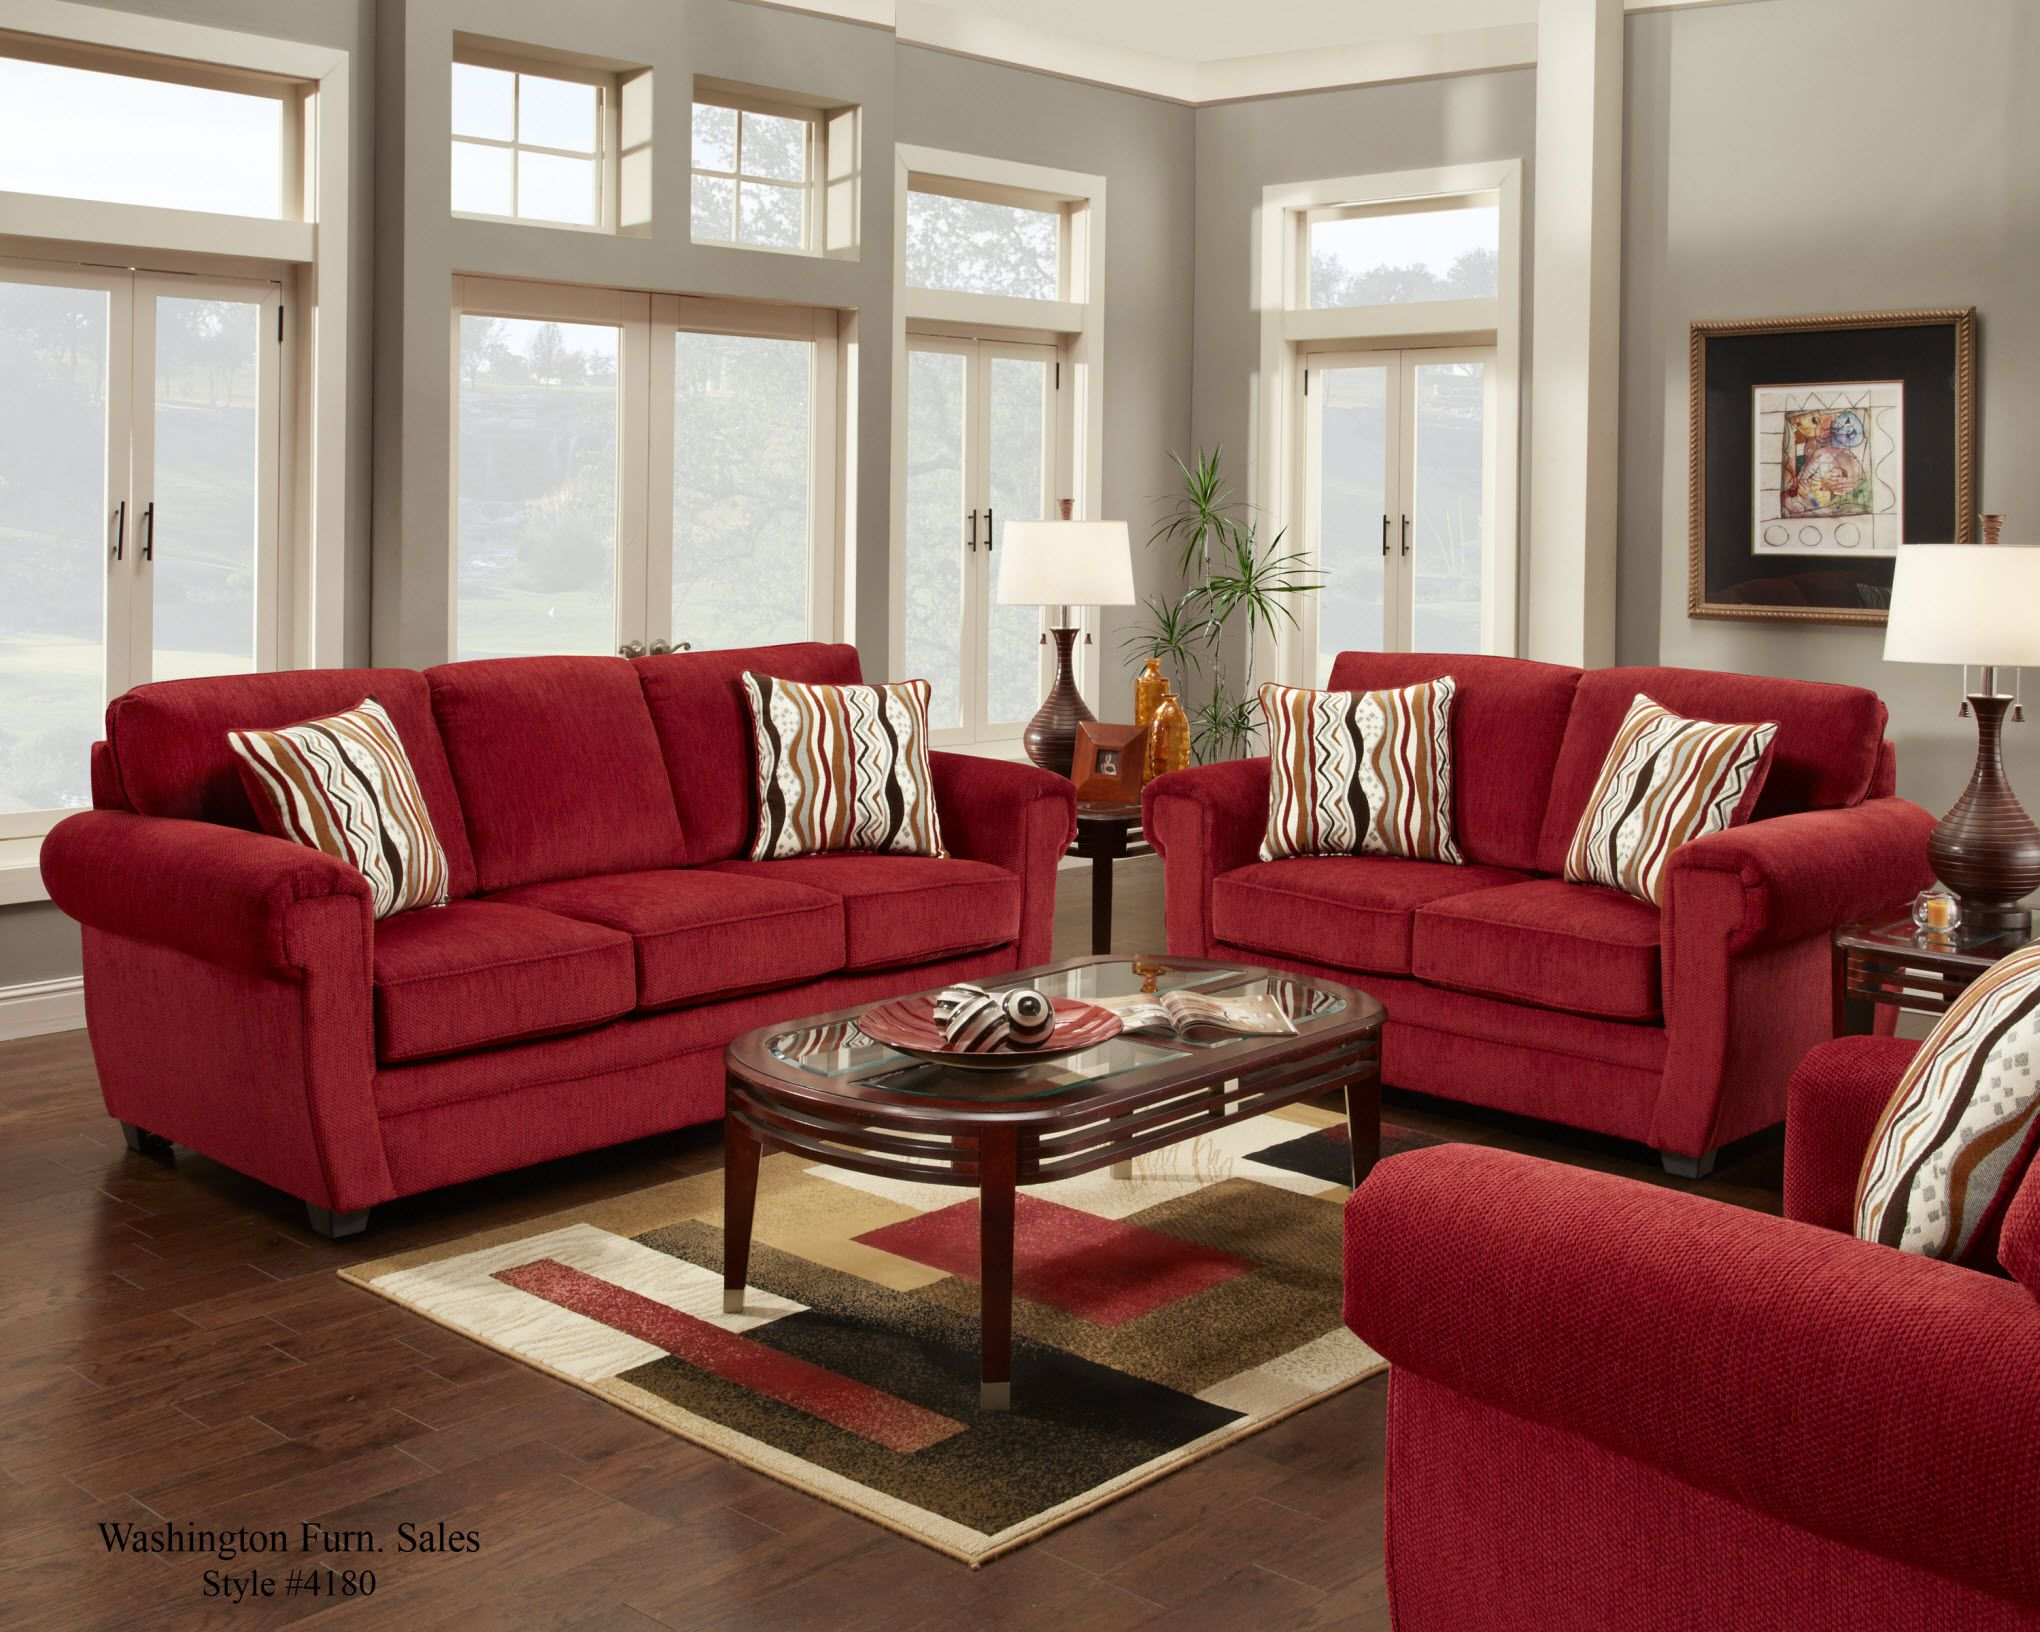 4180 washington samson red sofa and loveseat www for Sitting room accessories